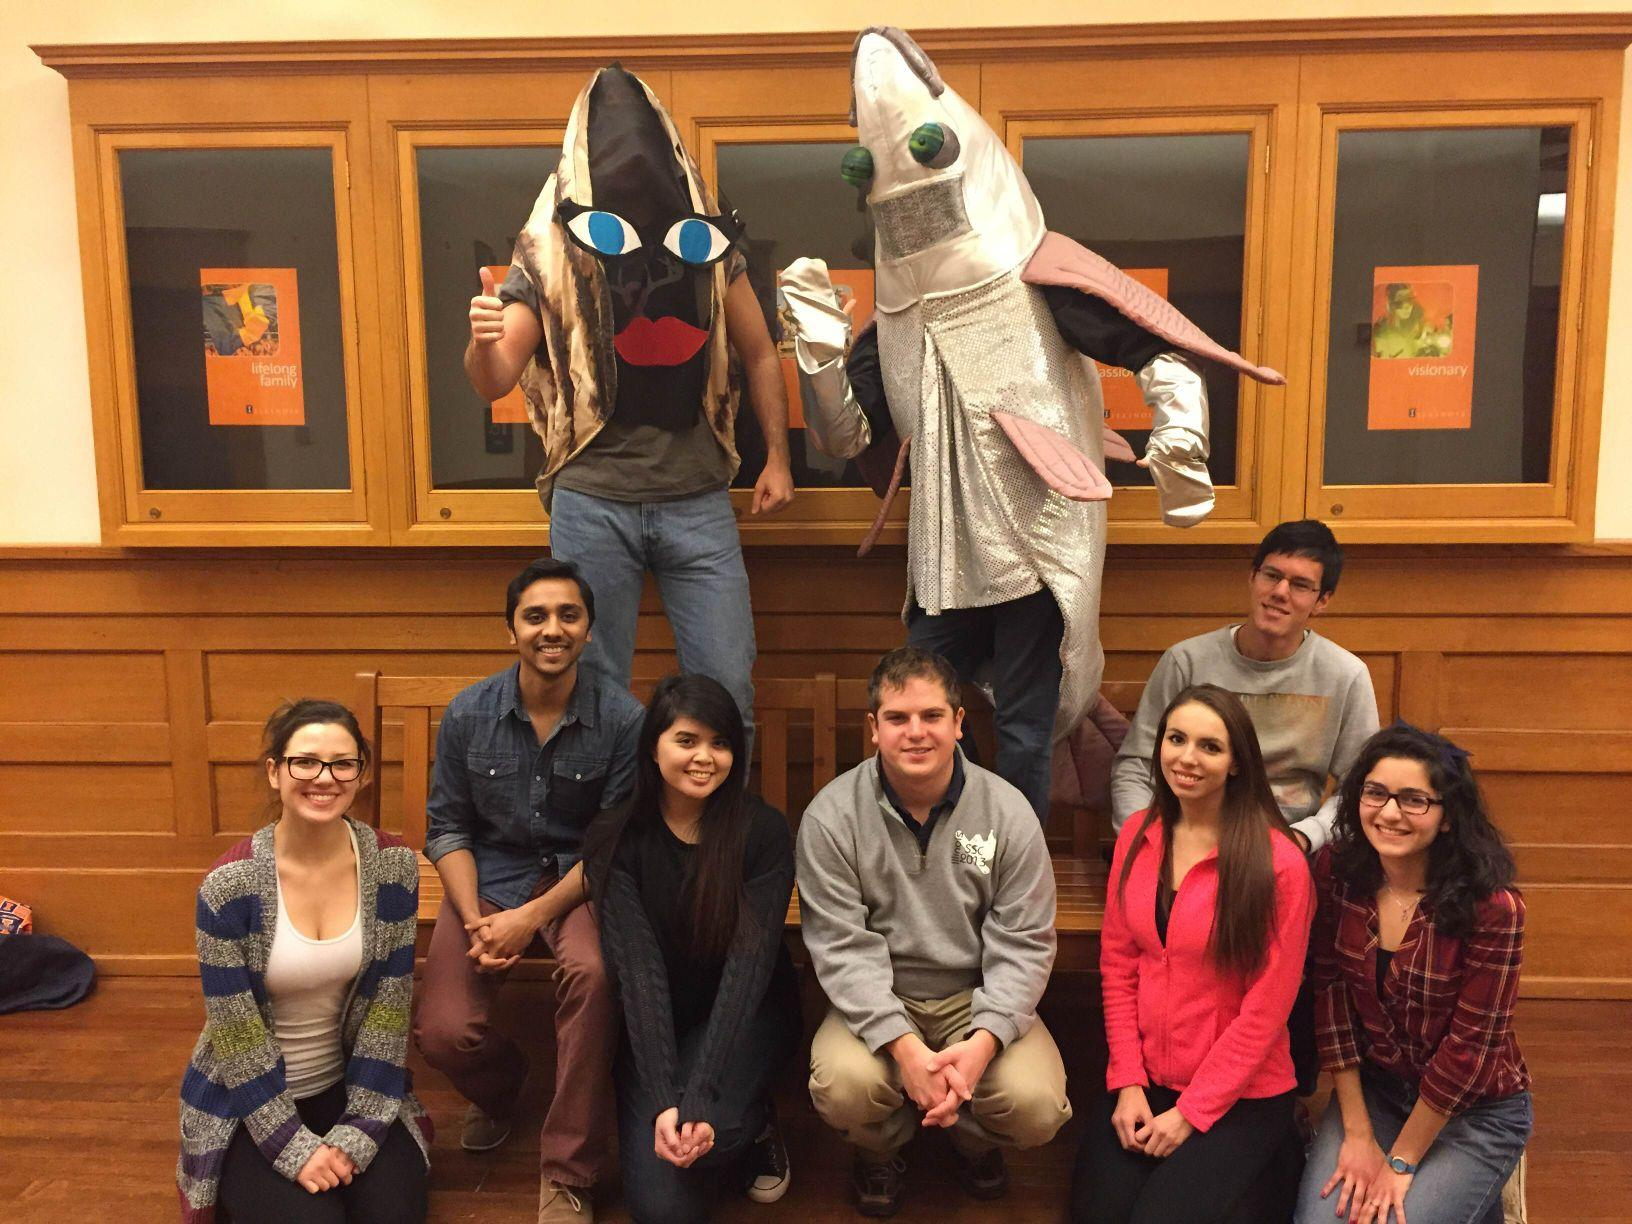 Students in an ENG 315 Learning in Community (LINC) class pose with fish costumes to advertise for the Medicine Take-back Event on Thursday at the Illini Union.